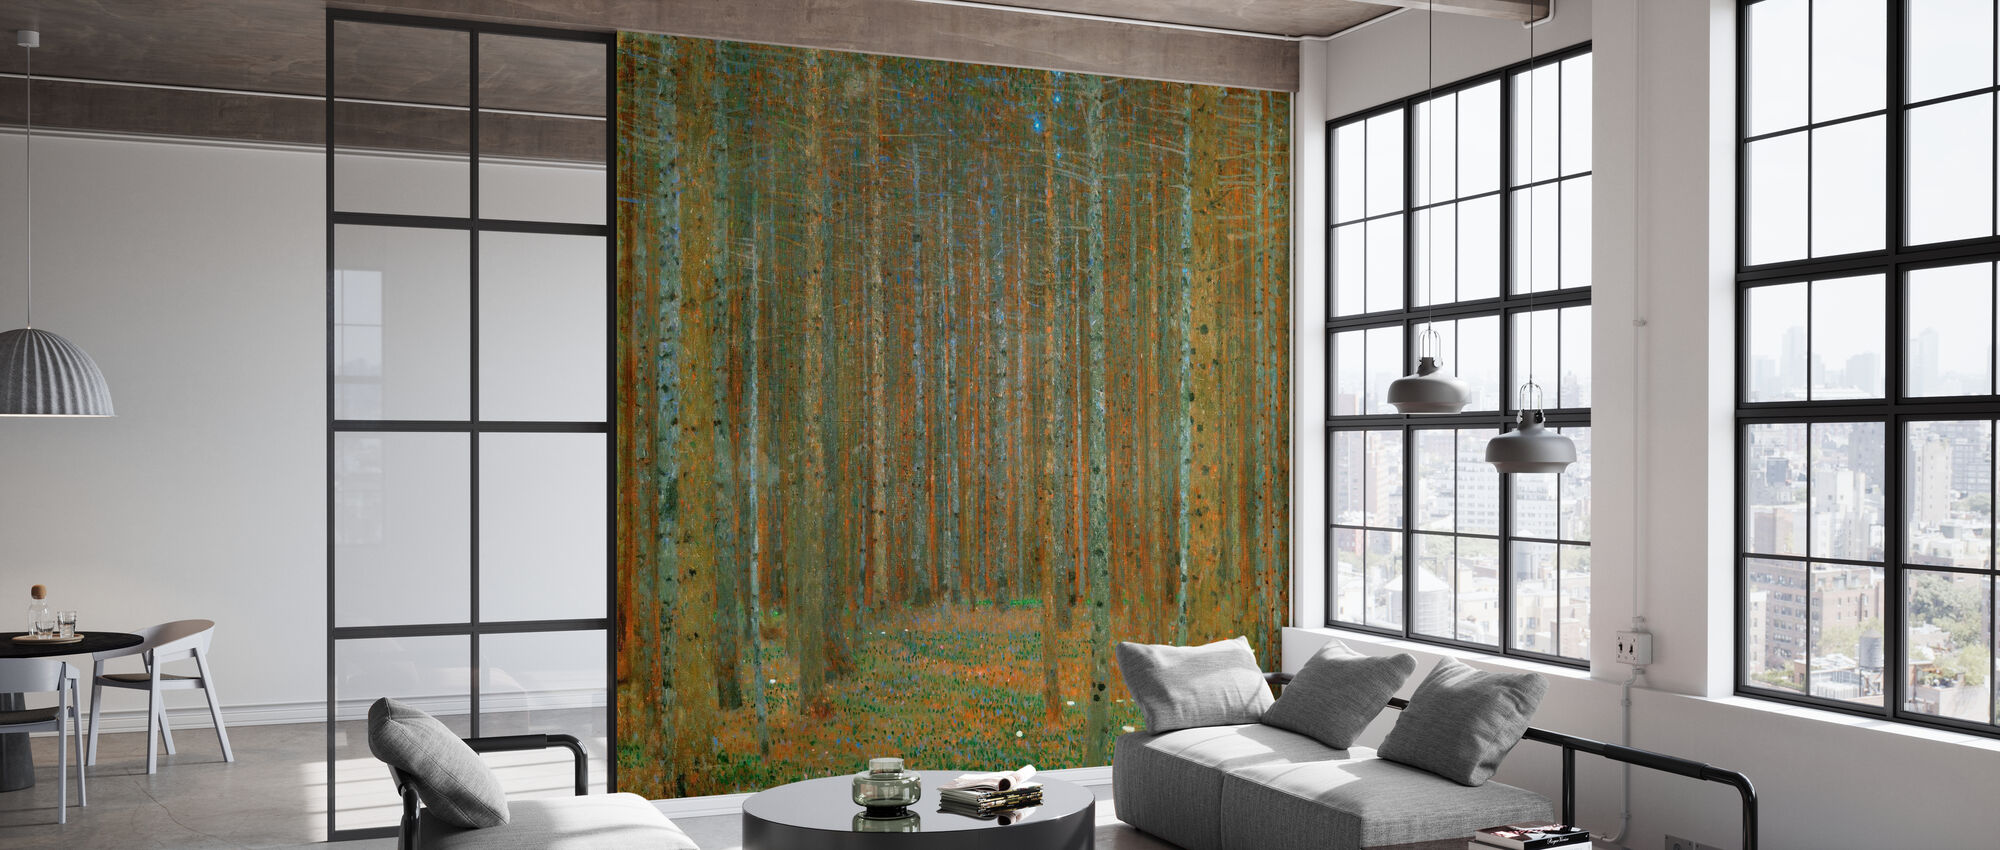 Klimt, Gustav - Fir Forest I - Wallpaper - Office